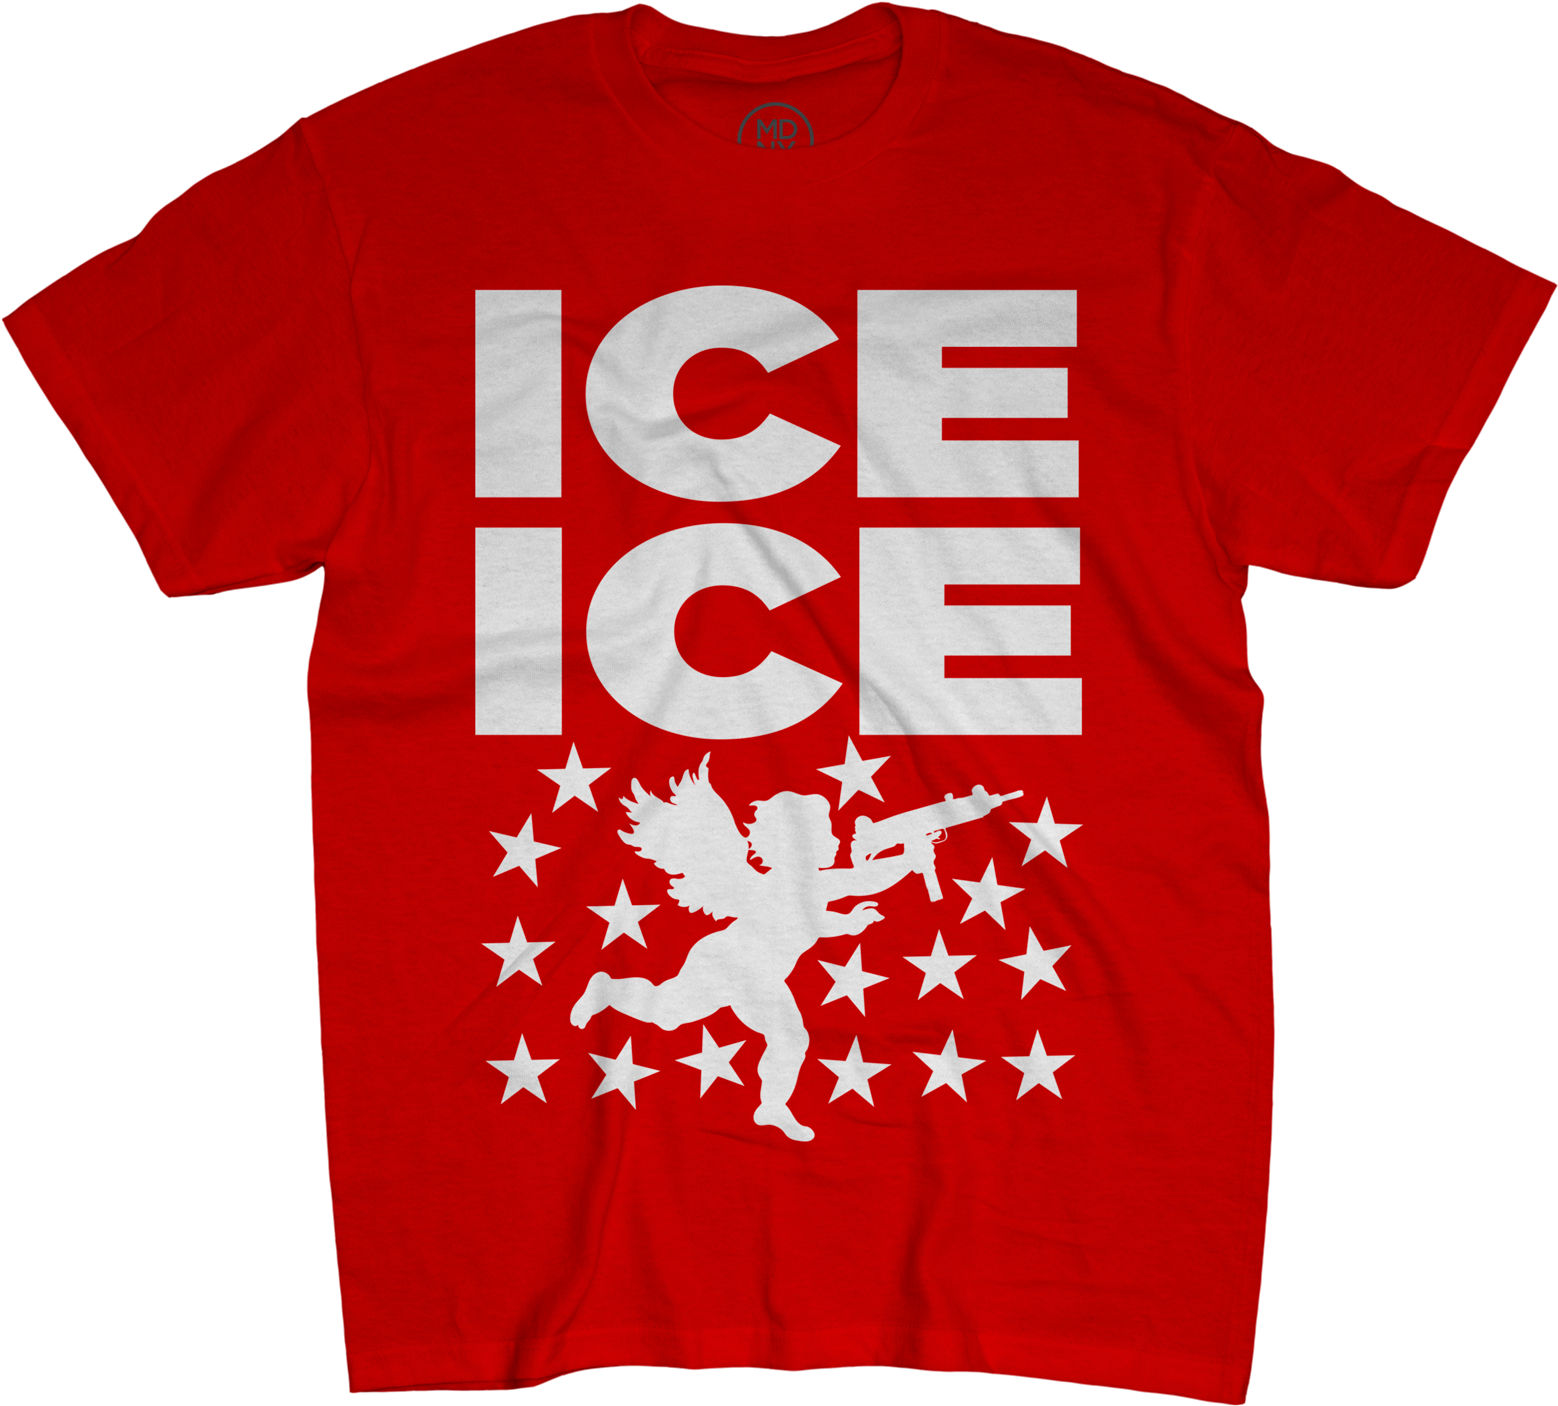 Ice Ice Cupid Red T-shirt - Best Red Hot Chili Peppers T Shirt (1600x1600), Png Download